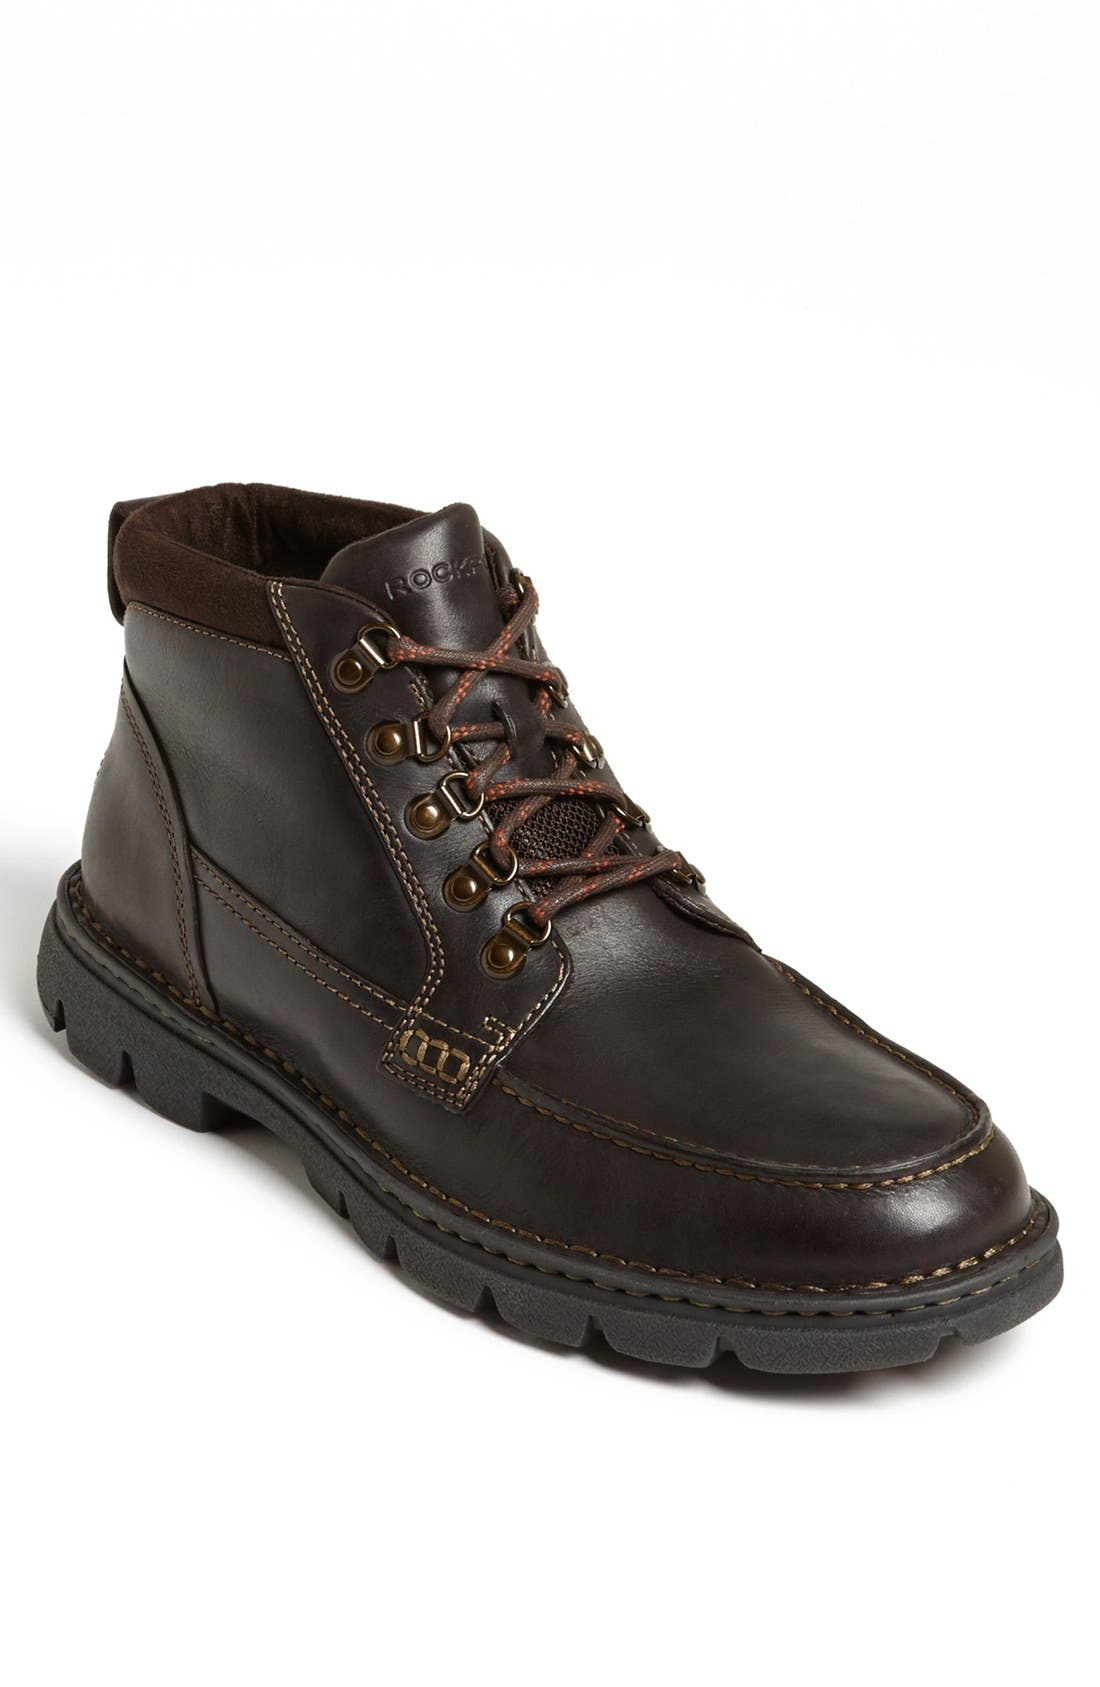 Alternate Image 1 Selected - Rockport 'RocSports Rugged' Moc Toe Boot